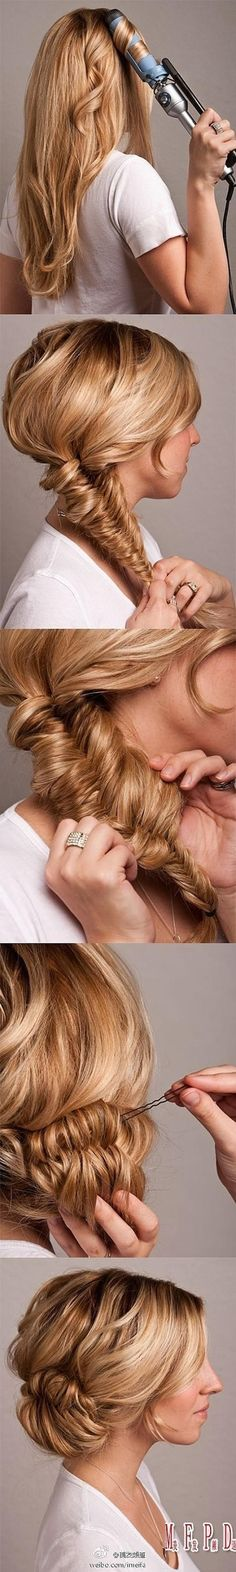 Looks a bit complicated but if you know how to do that plaiting it looks doable.  Dramatic way to go from day to night!